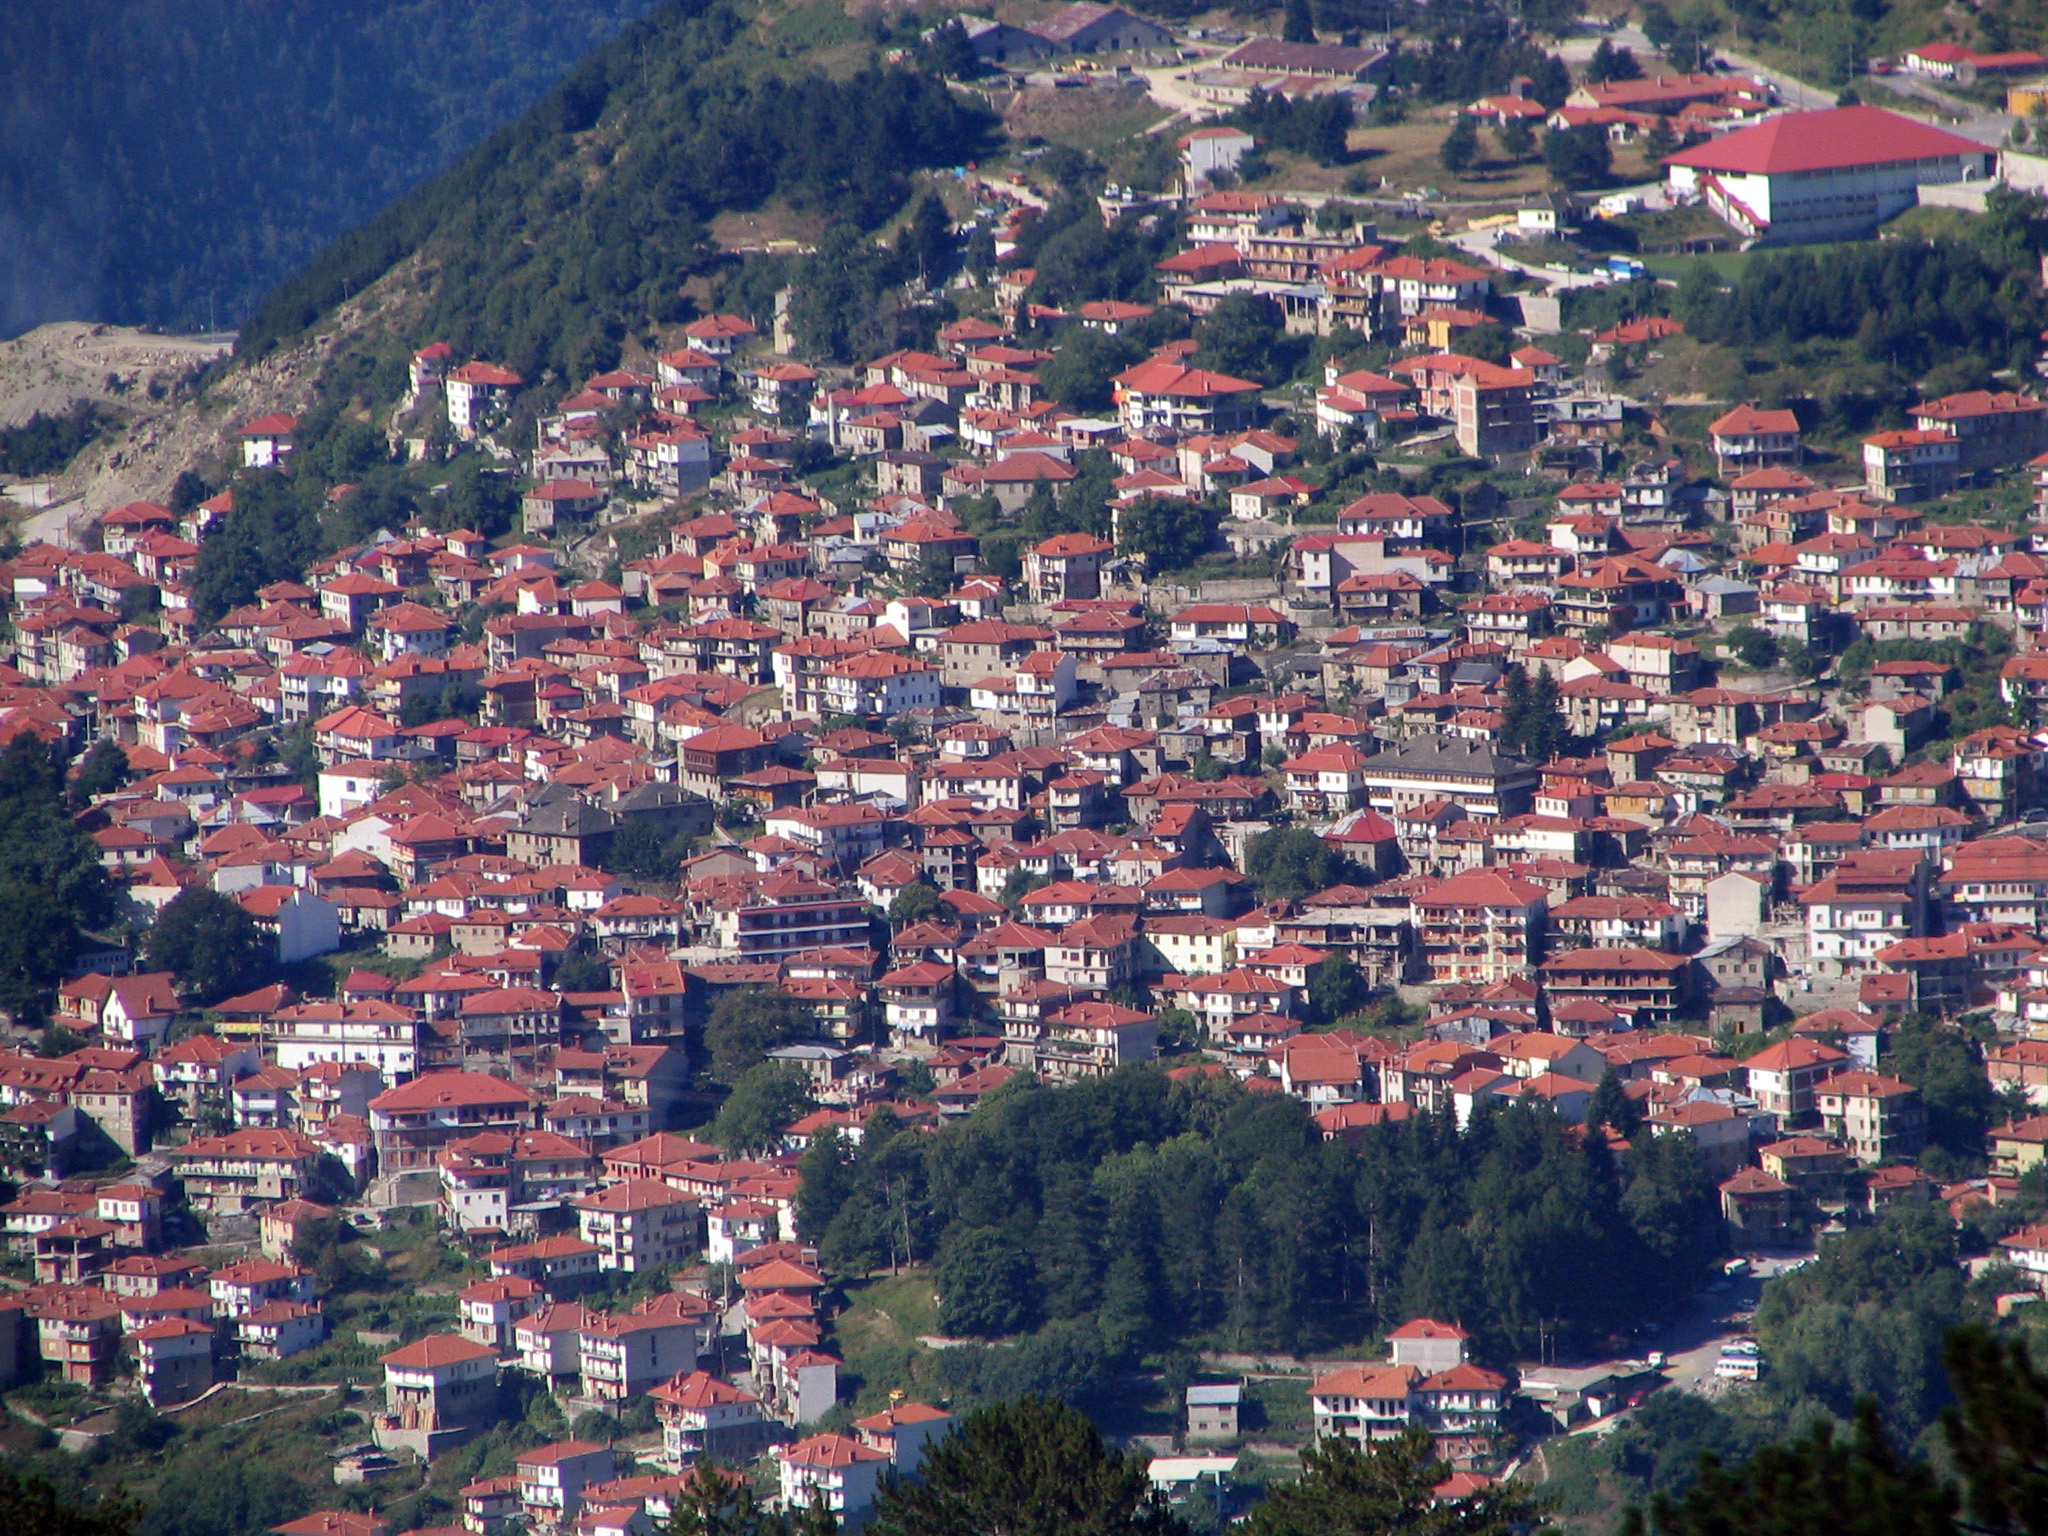 Metsovo, a town in the Pindus Mountains, Greece